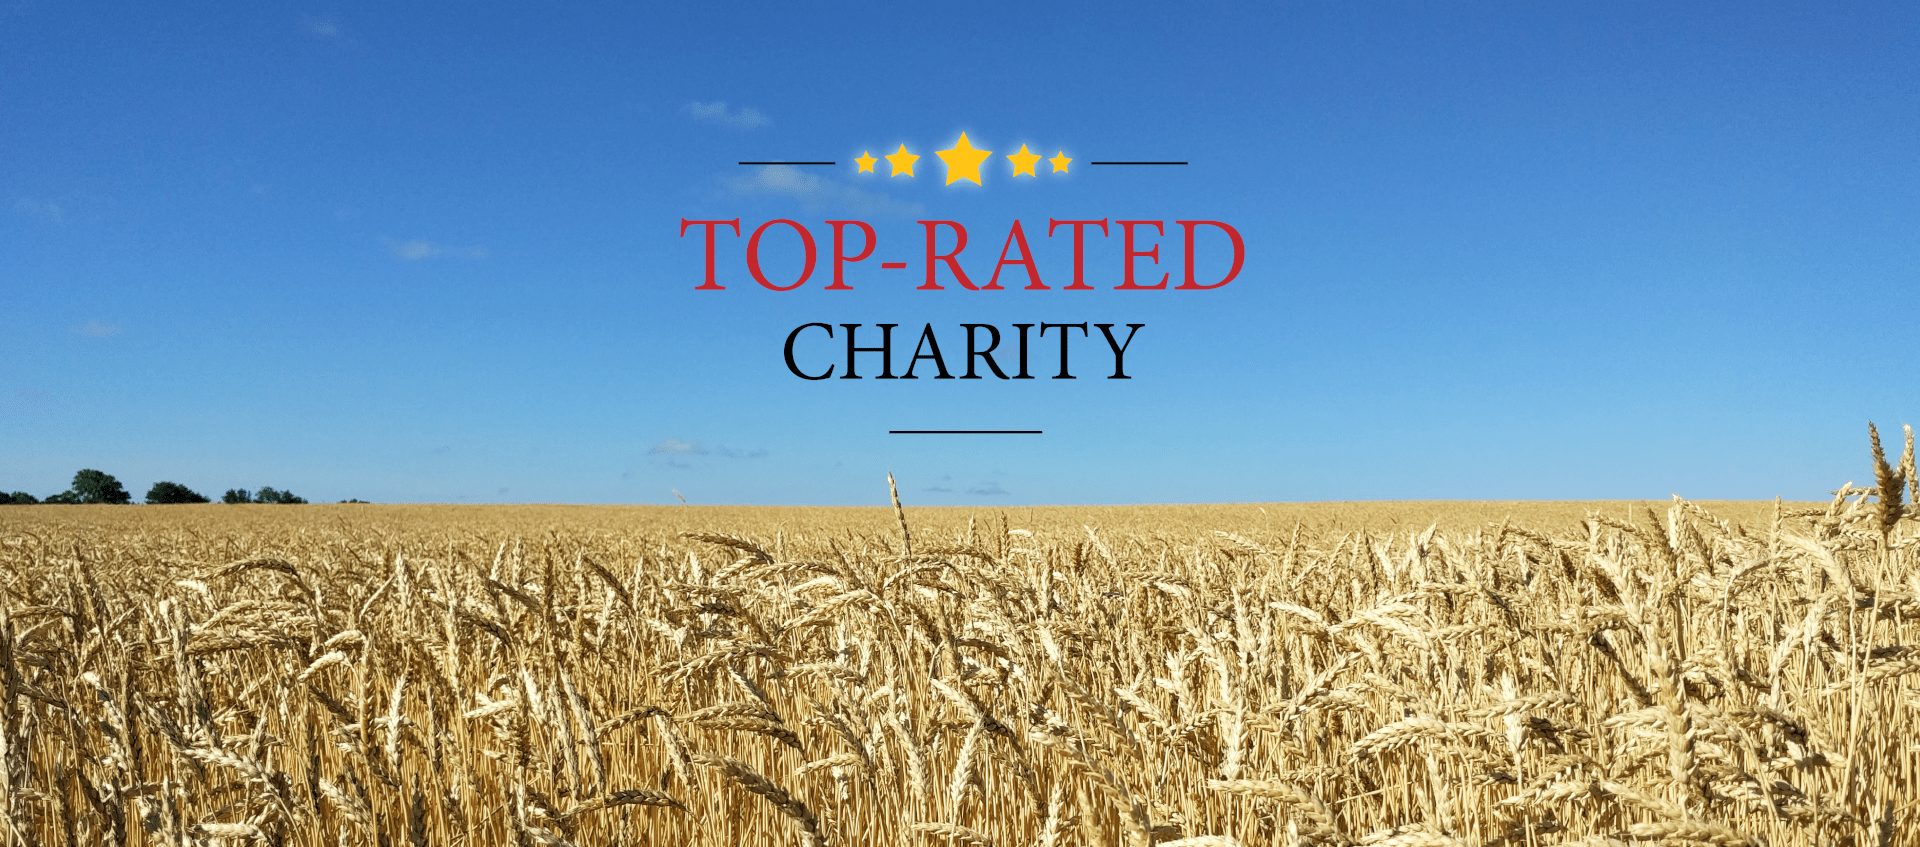 Top-Rated Charity